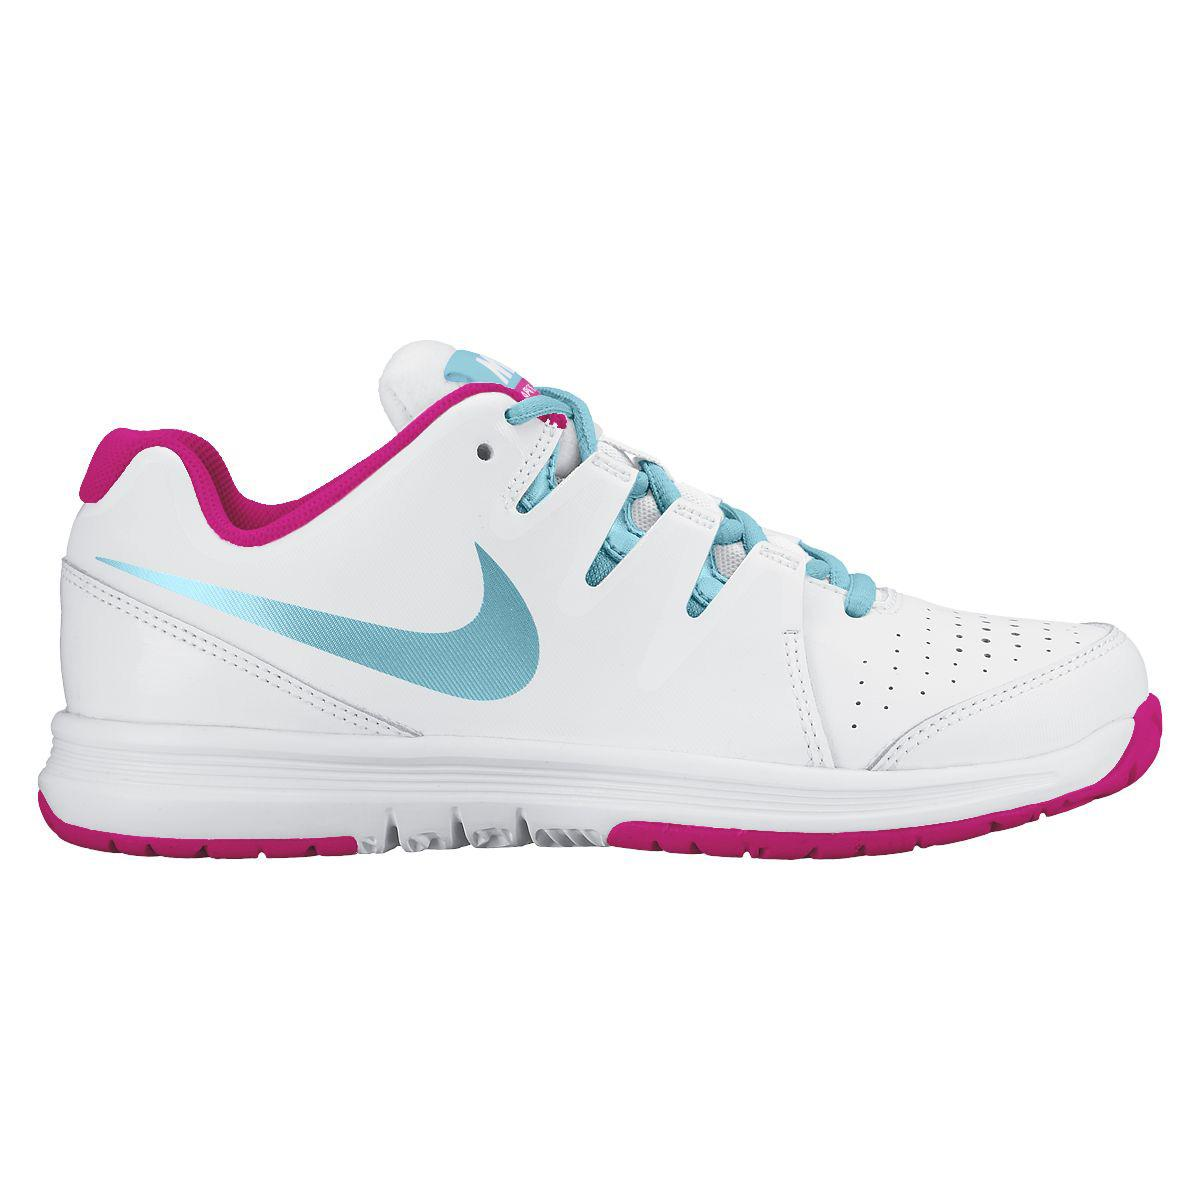 Nike Girls Vapor Court Tennis Shoes - White/Vivid Pink